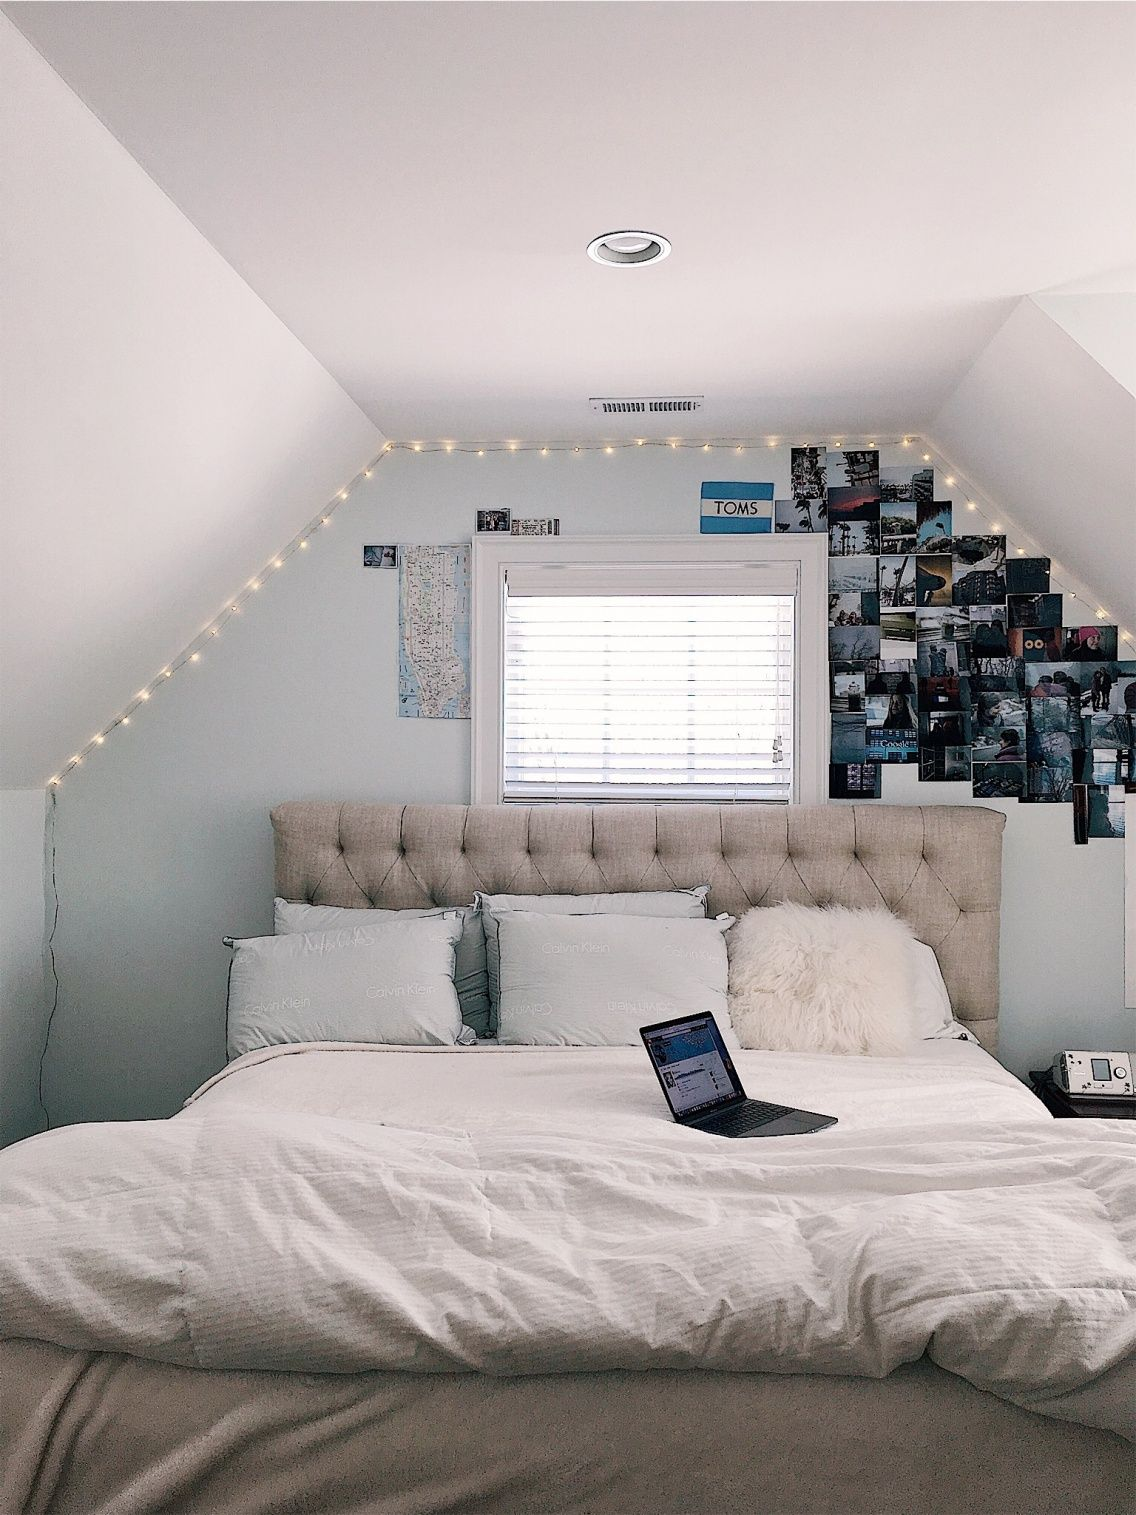 P I N T E R E S T Meghancarroll Dream Rooms Winter Bedroom Aesthetic Bedroom